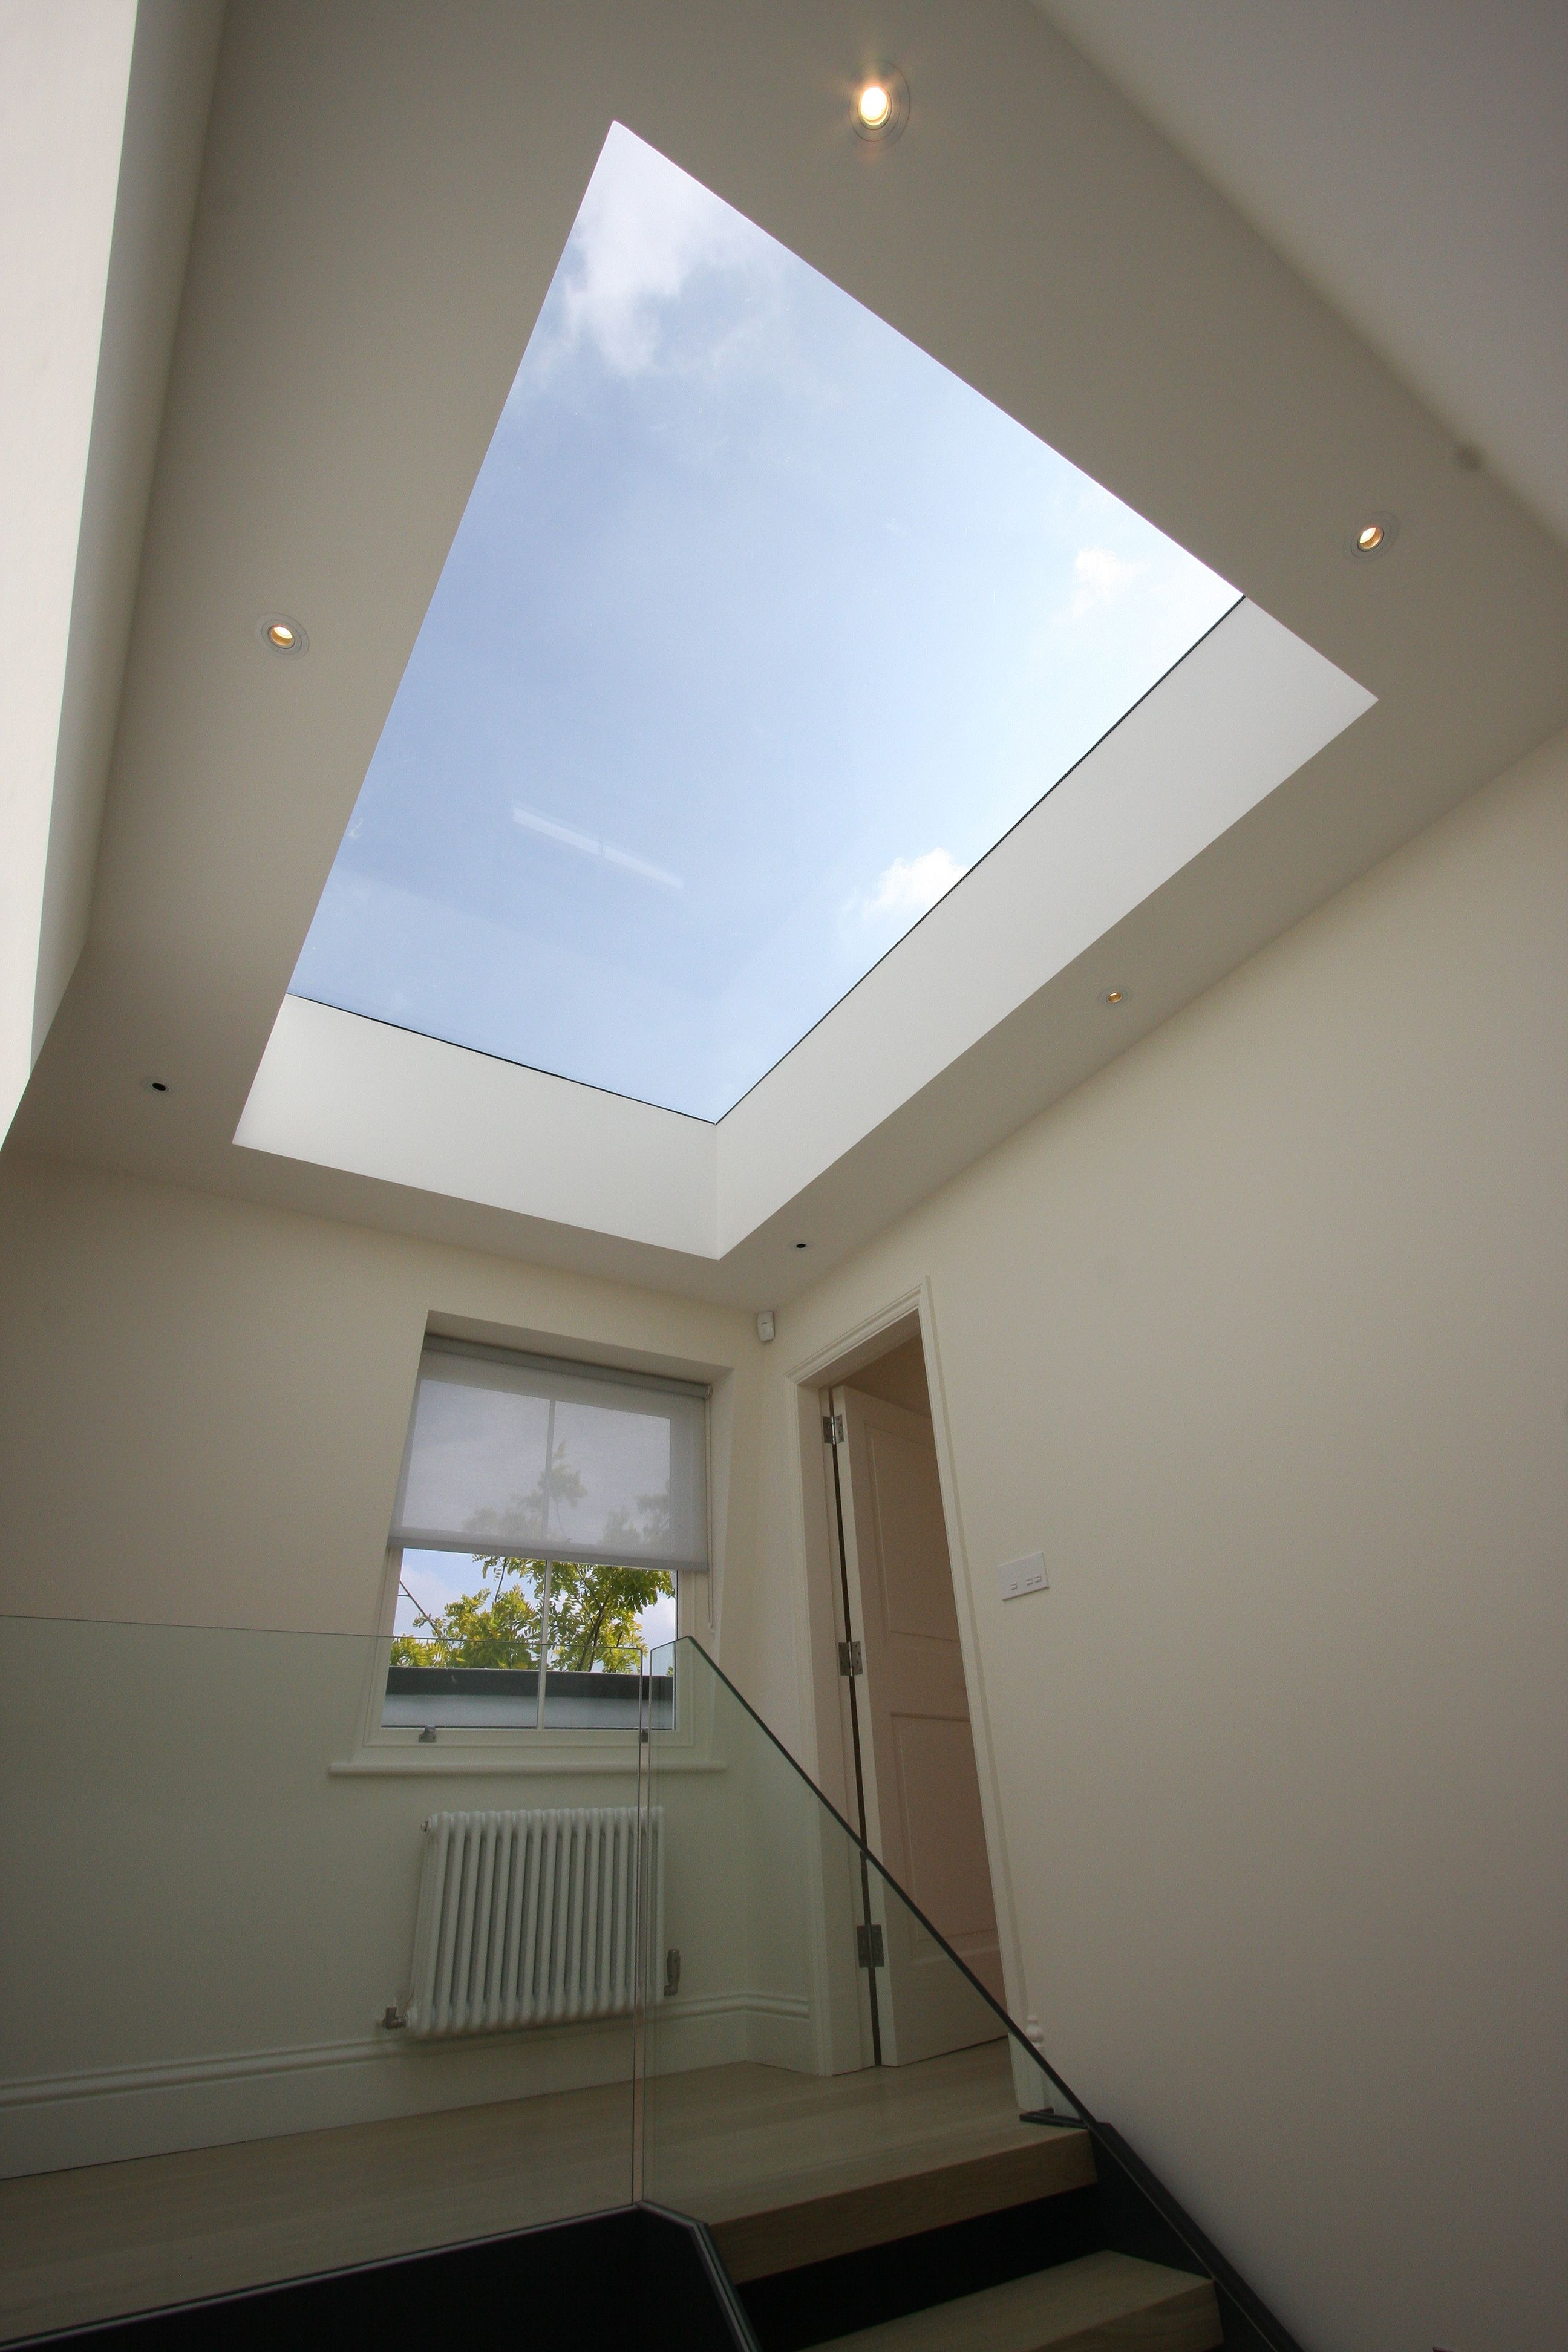 A Rooflight To The Top Of The Stars Allows Lots Of Light To Enter The Staircase Void The Use Of Glass Balustra Flat Roof Skylights Roof Light Flat Roof Lights